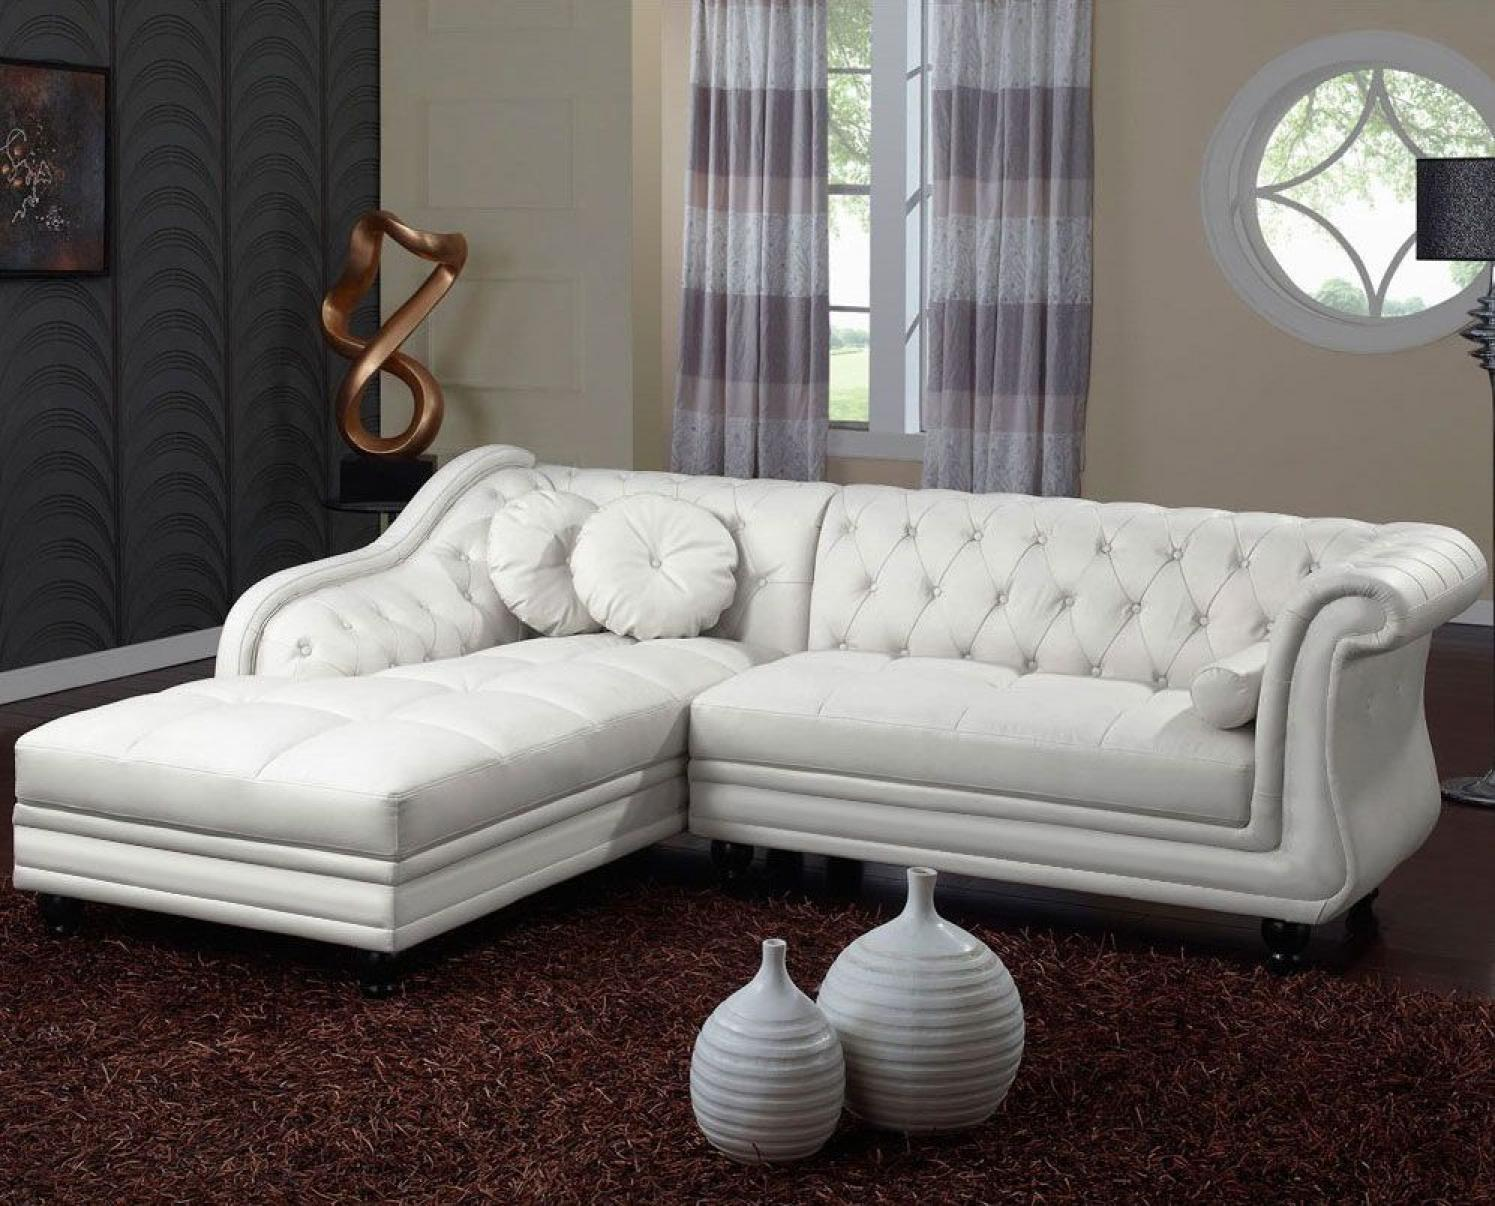 Canapé Chesterfield Convertible Images Canape Chesterfield - Canapé chesterfield simili cuir